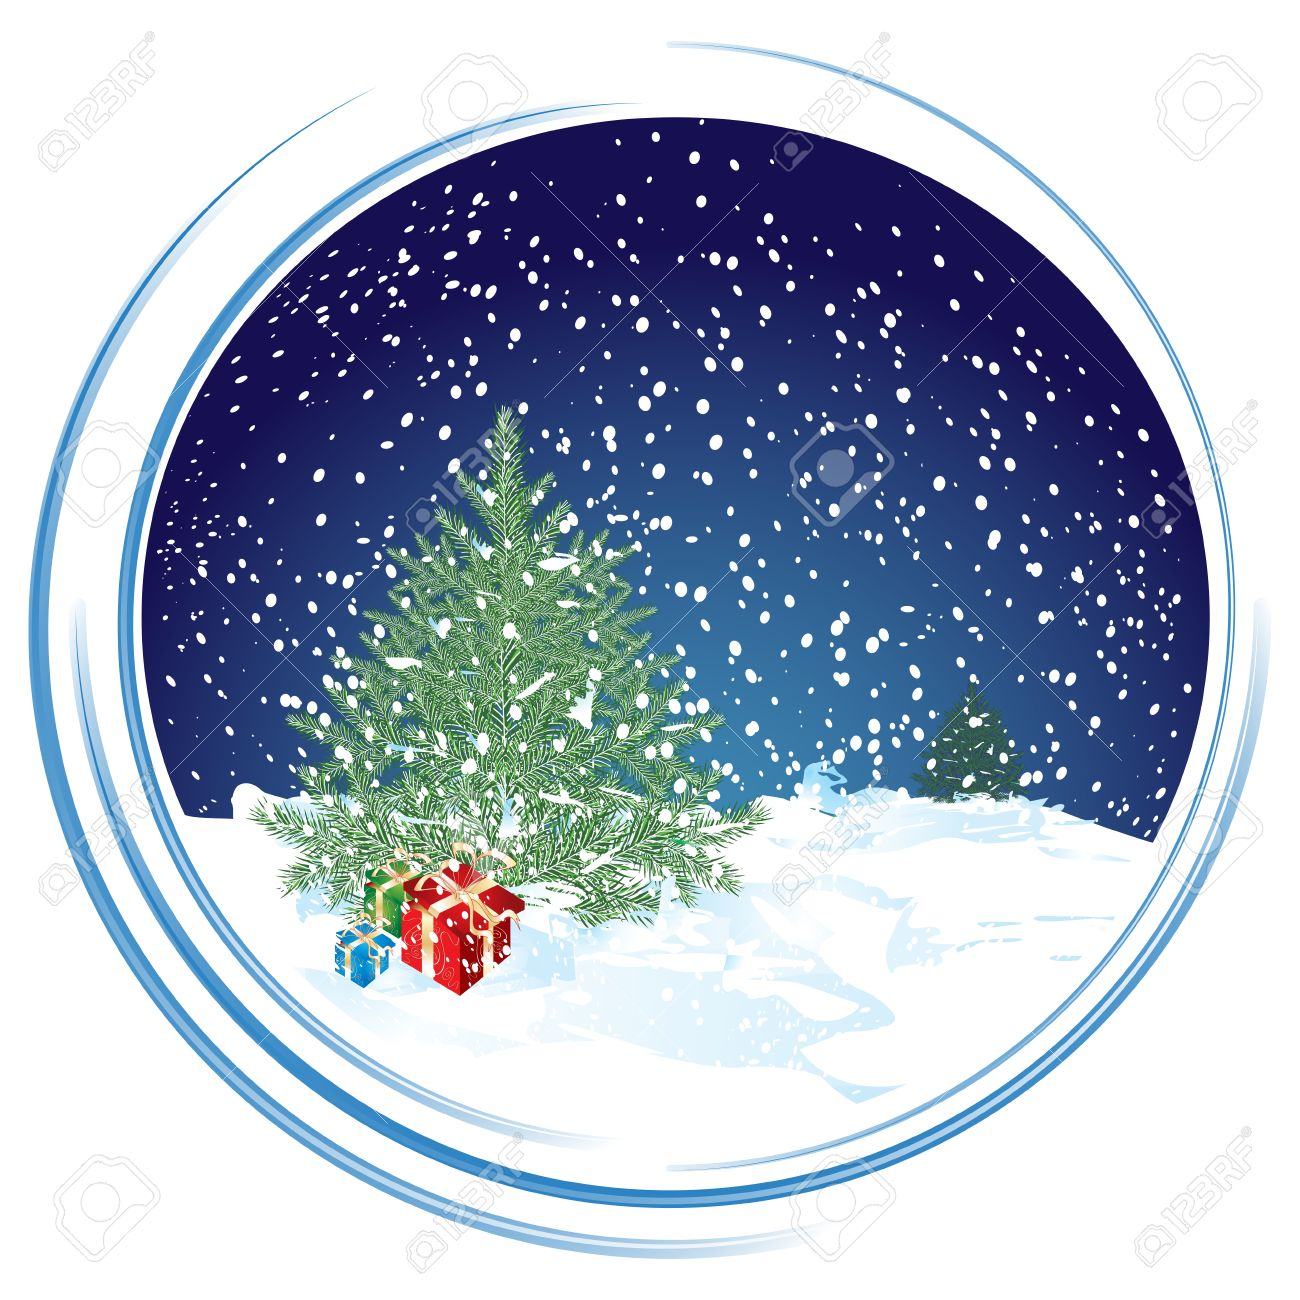 Christmas Scene In Circle Background, Illustration Royalty Free ...